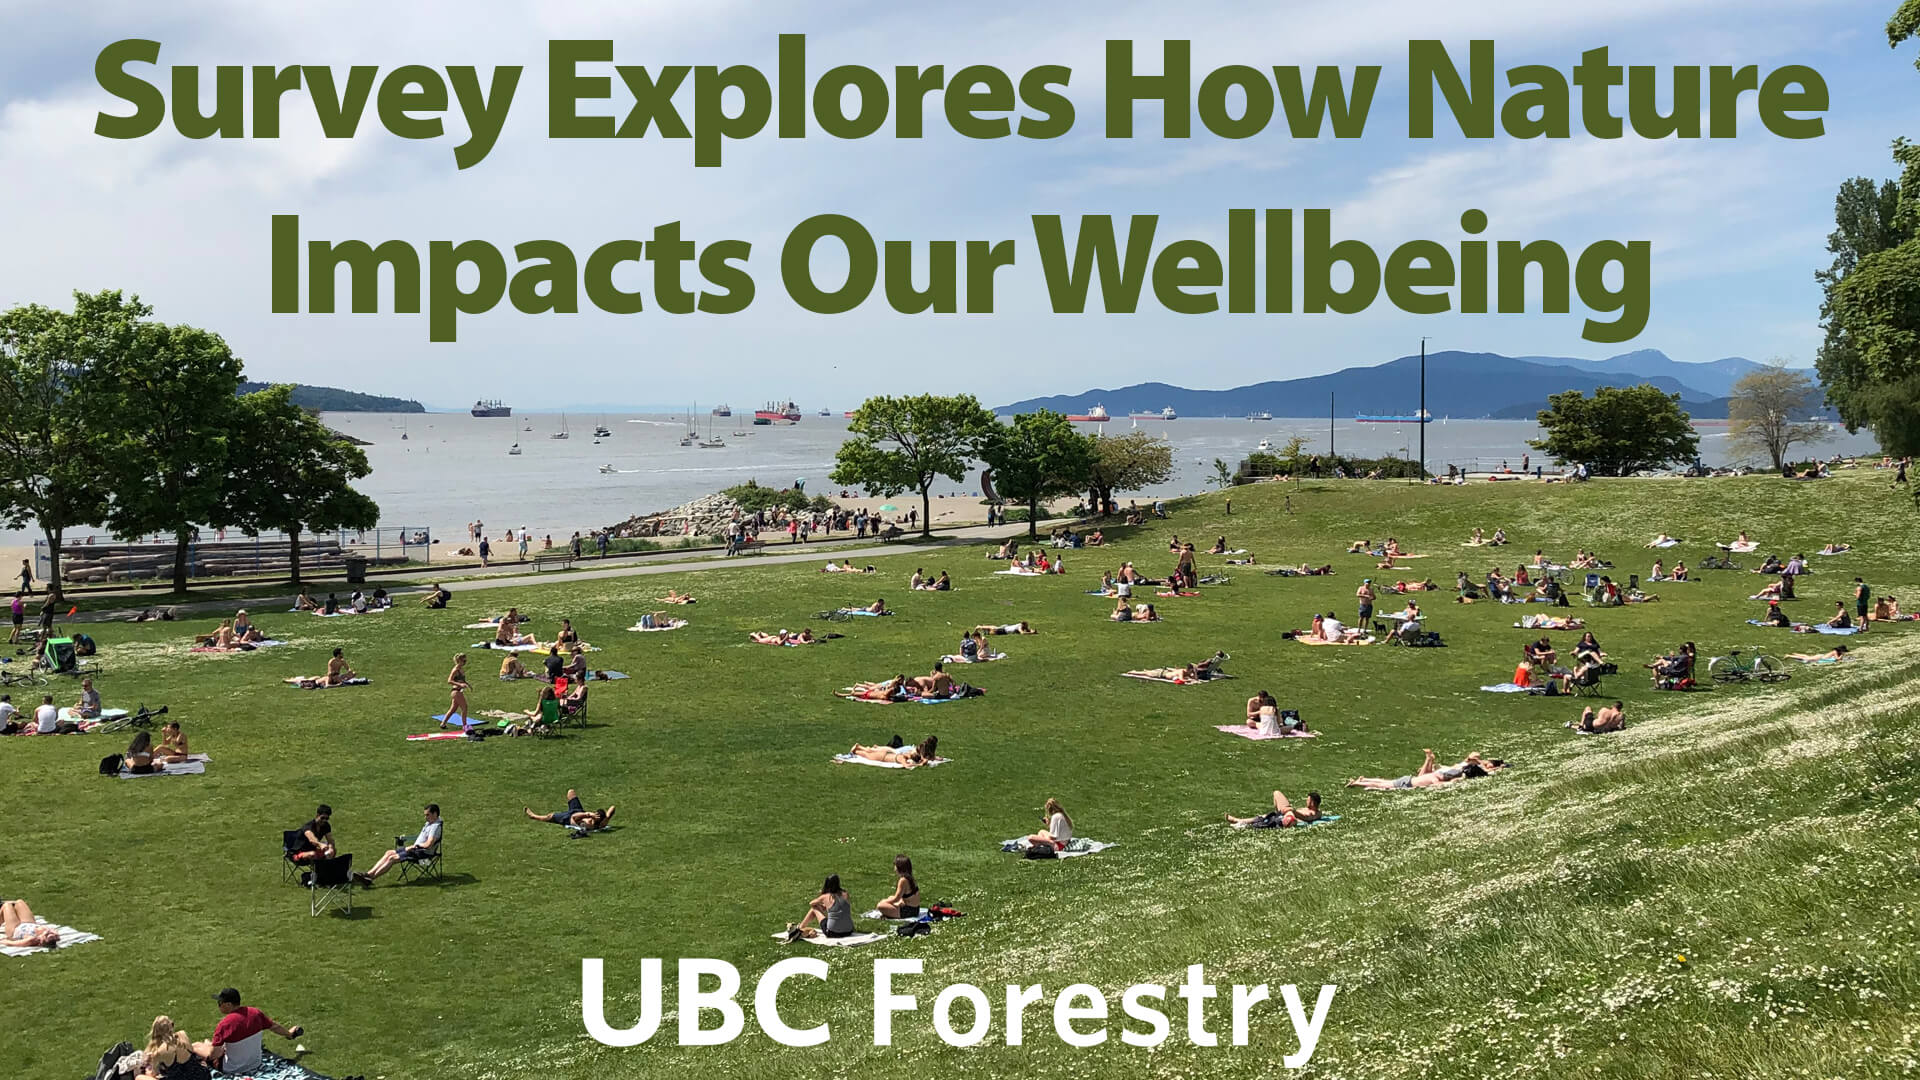 UBC Forestry Survey Asks How Nature Impacts Our Well-being